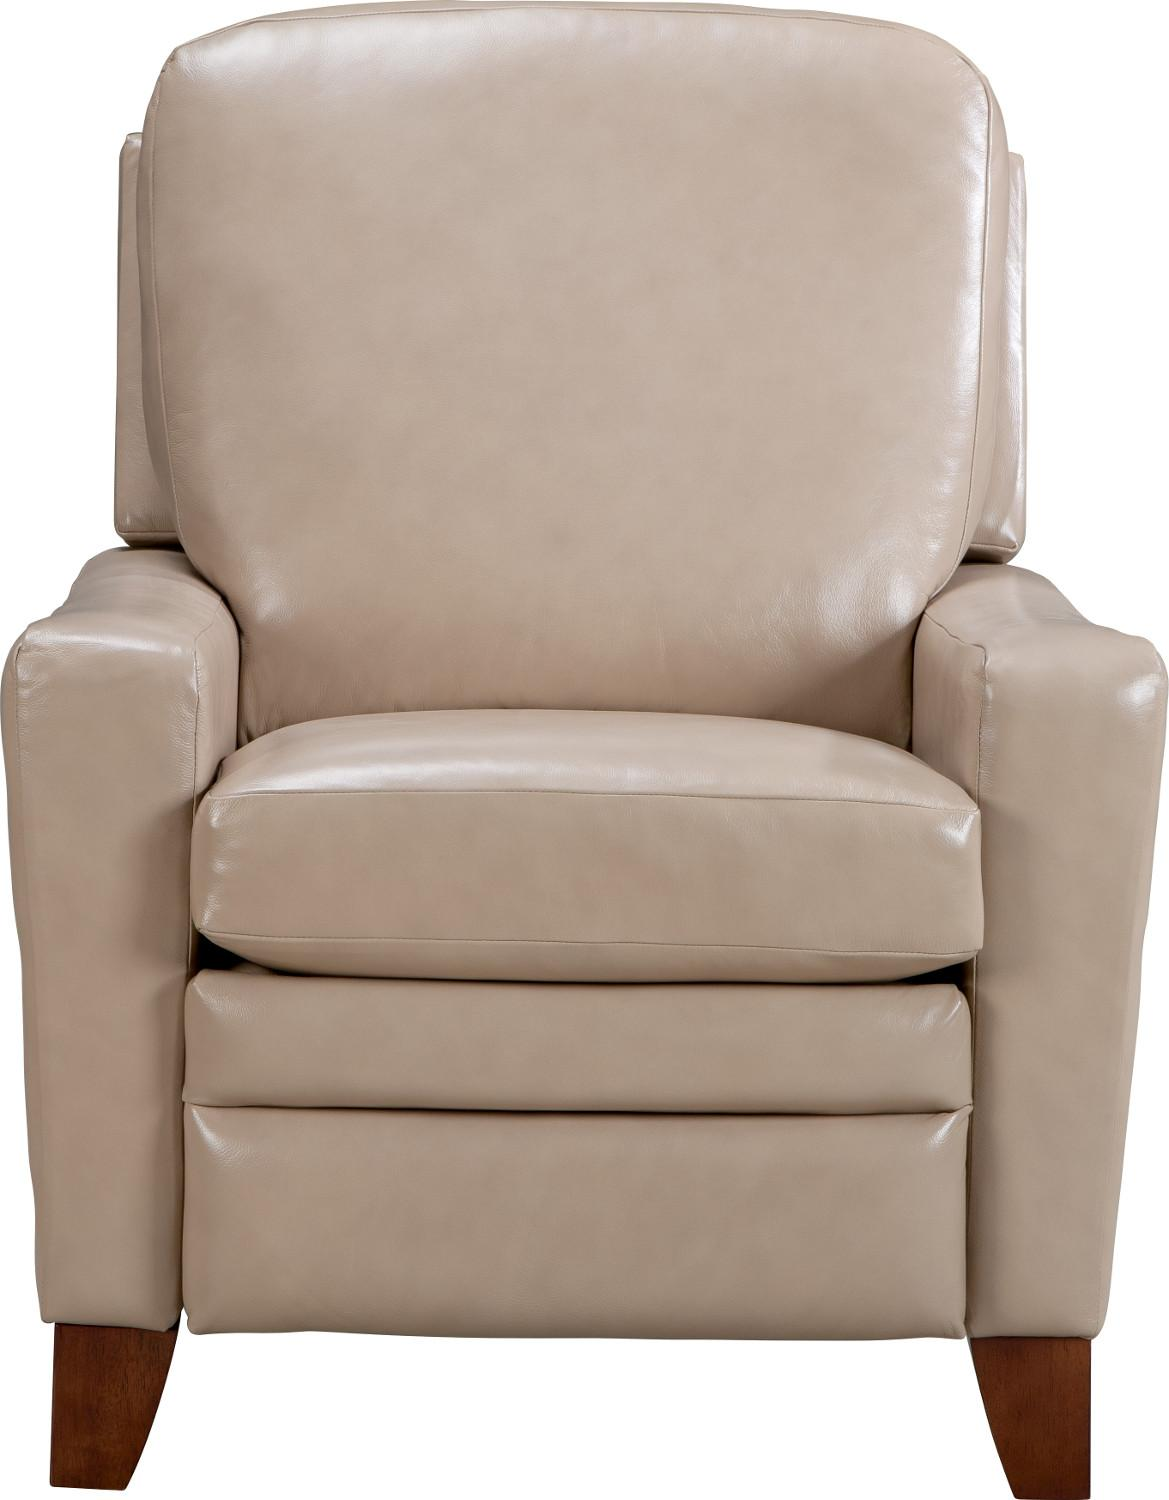 Cabot Power-Recline Low Profile Recliner